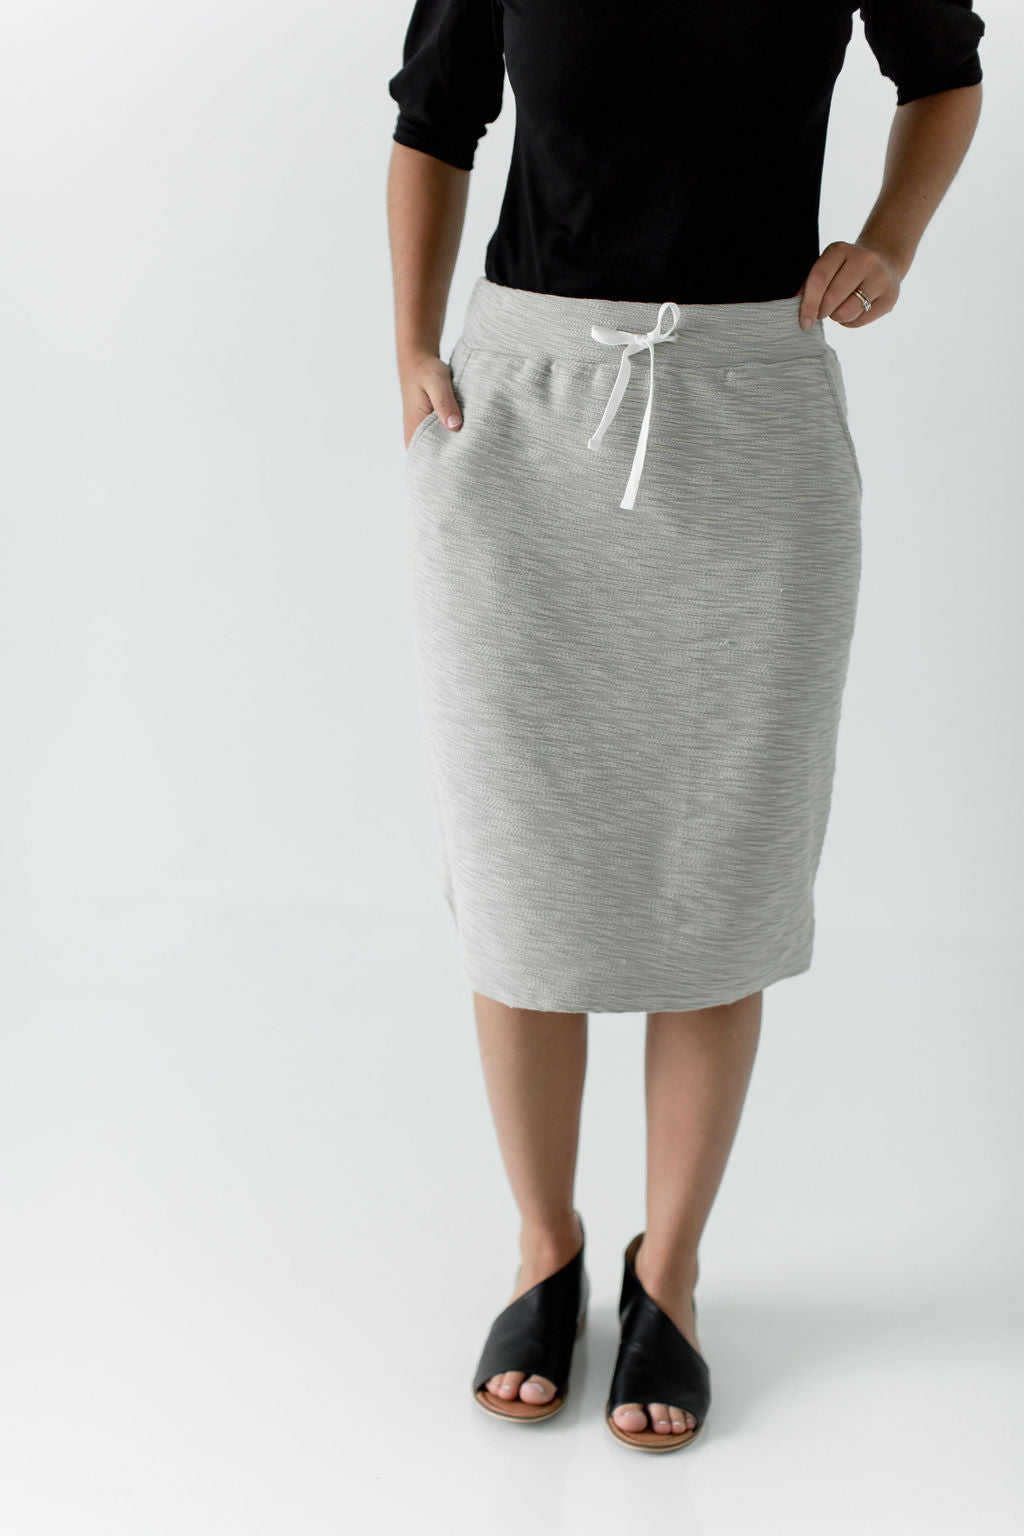 'Lauren' Everyday Skirt in Taupe